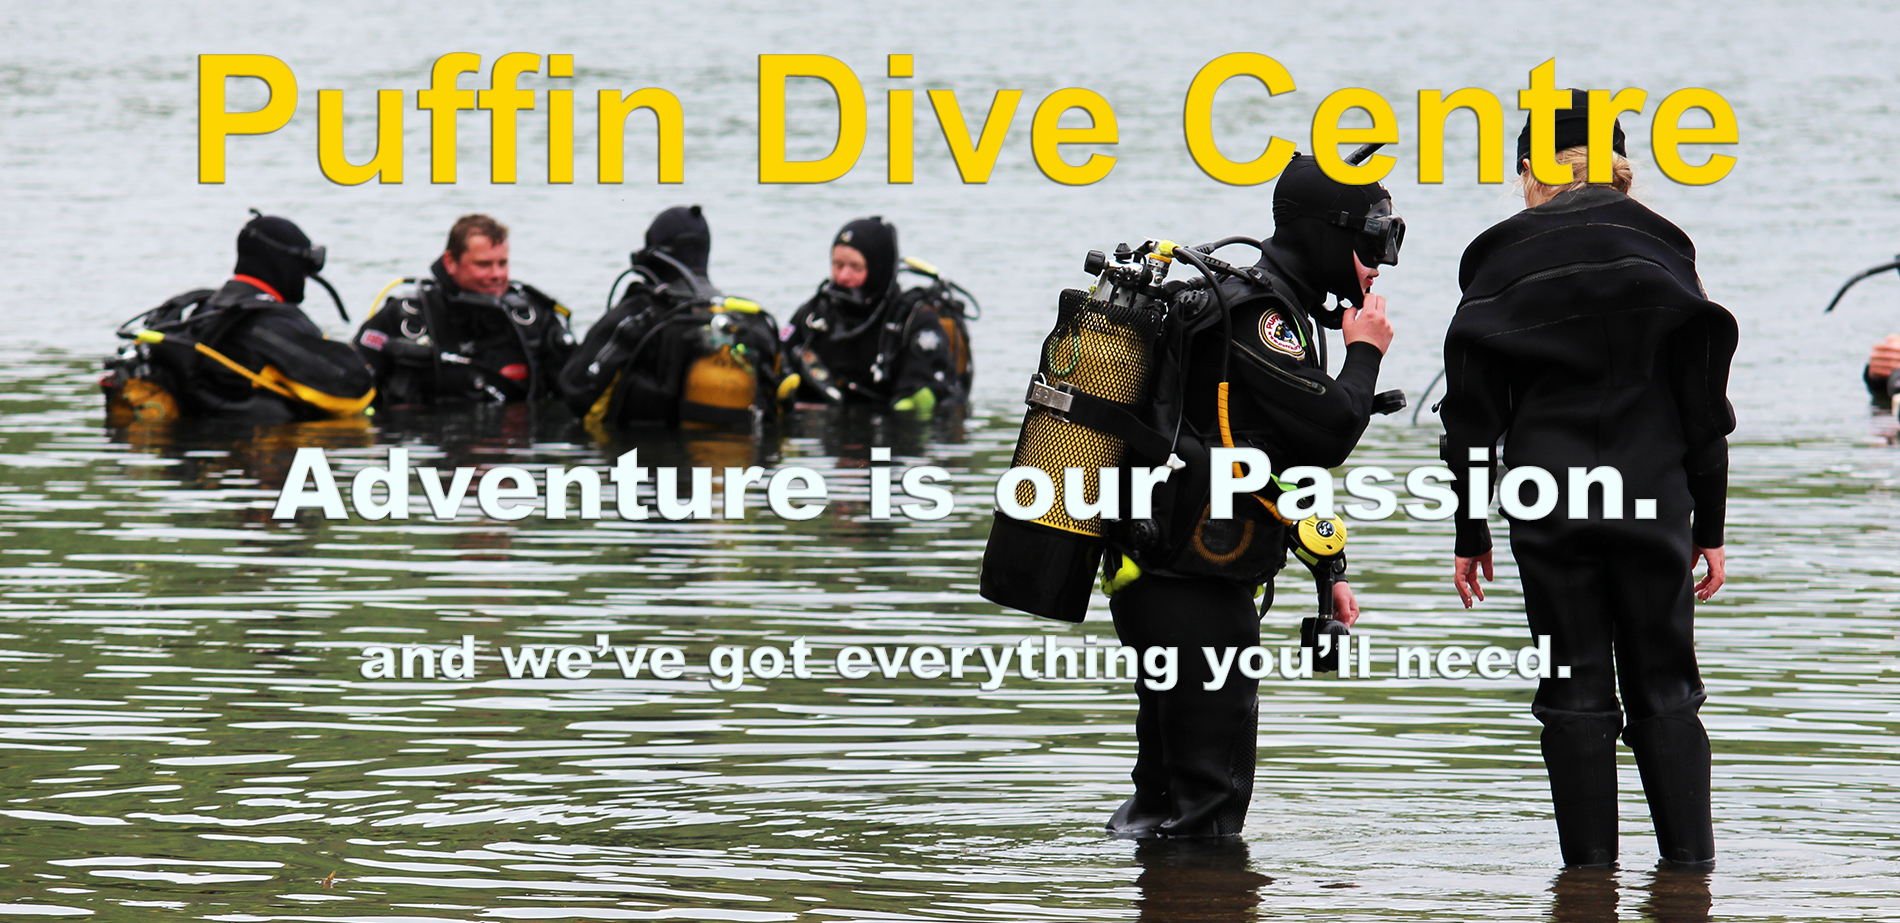 Puffin Dive Centre. Adventure is our passion diving tanks in background